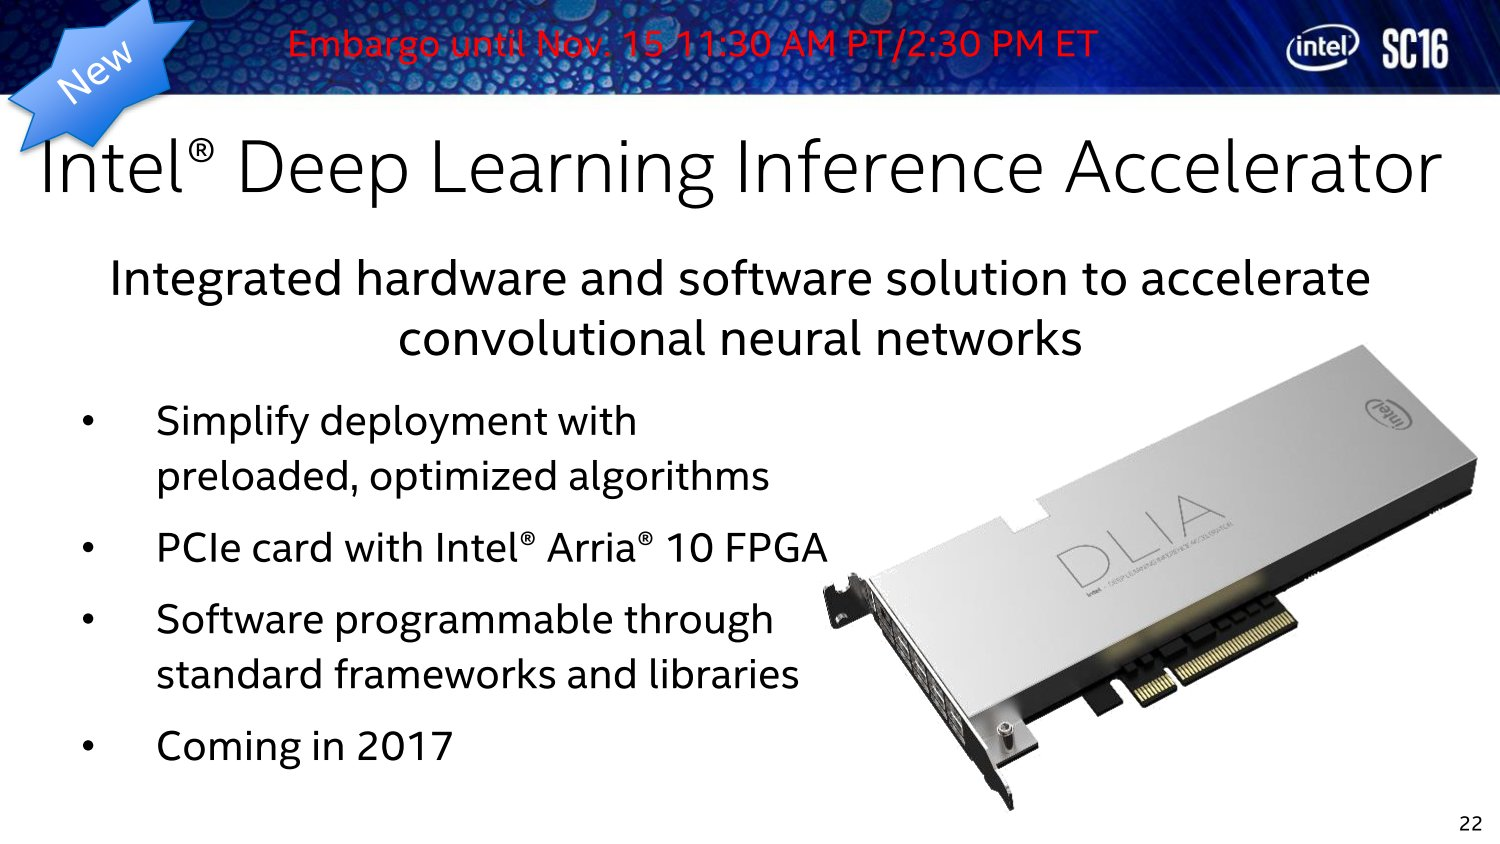 Deep Learning Inference Accelerator